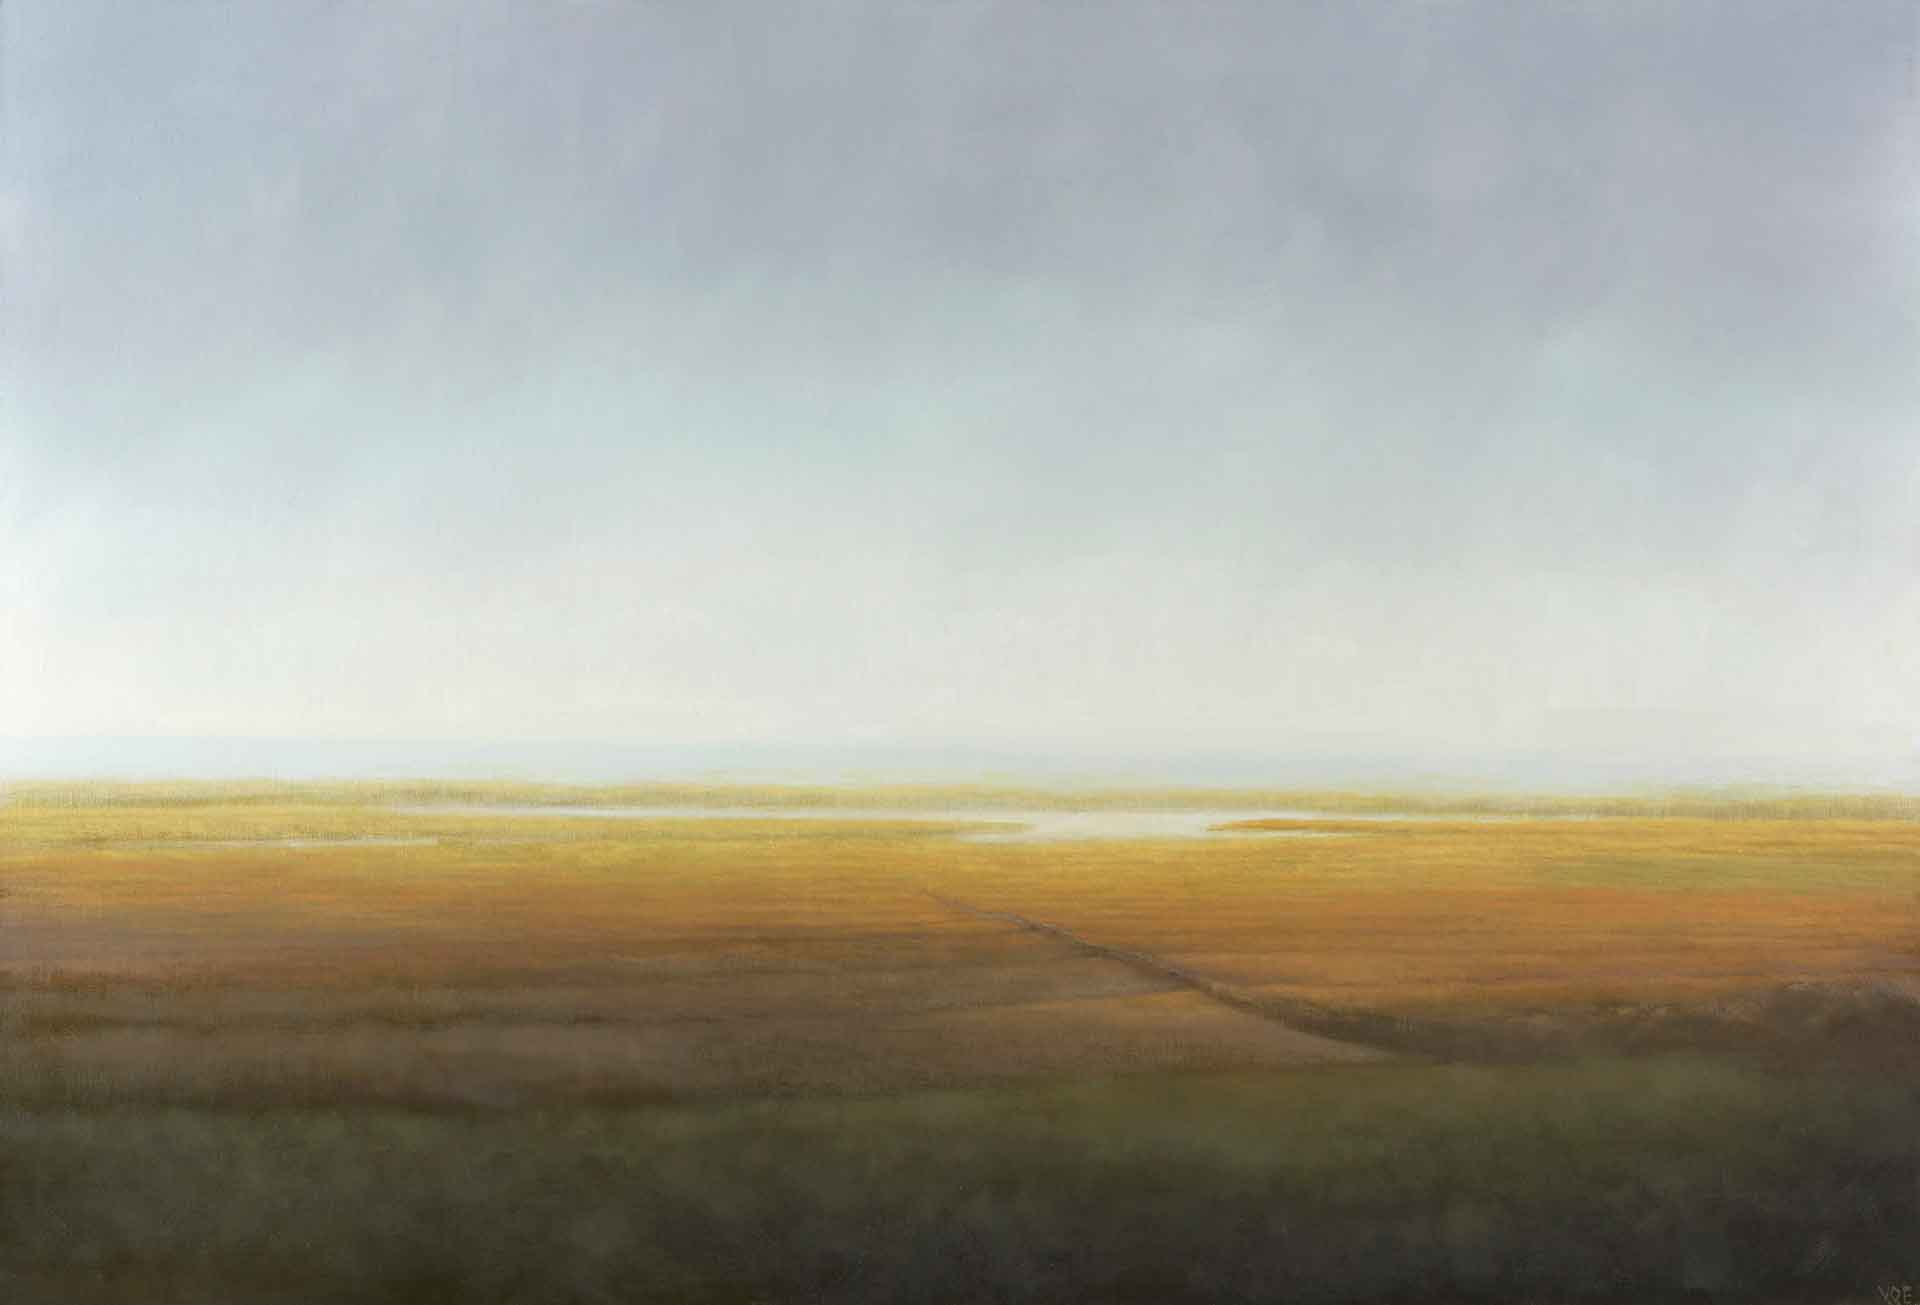 The Morning Light On The Machair, South Uist - Landscape Painting By Victoria Orr Ewing